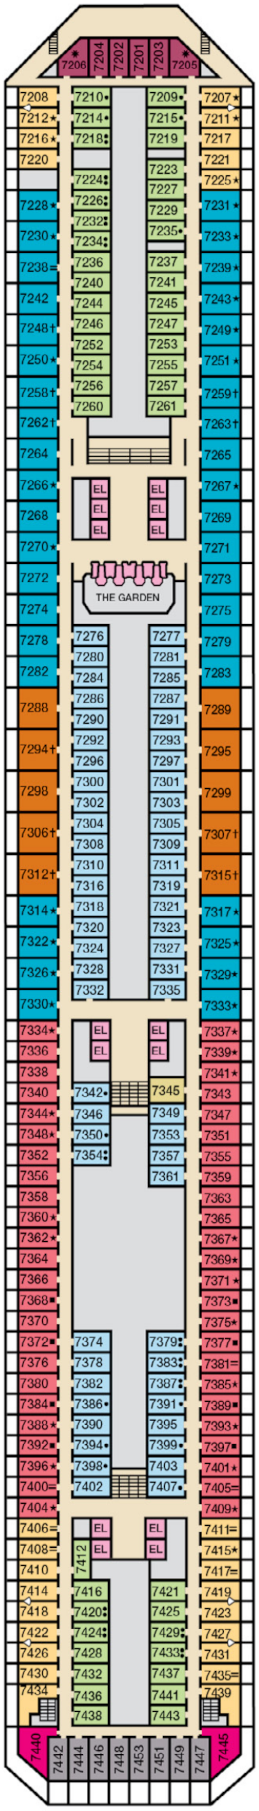 Carnival Liberty Empress Deck Deck Plan